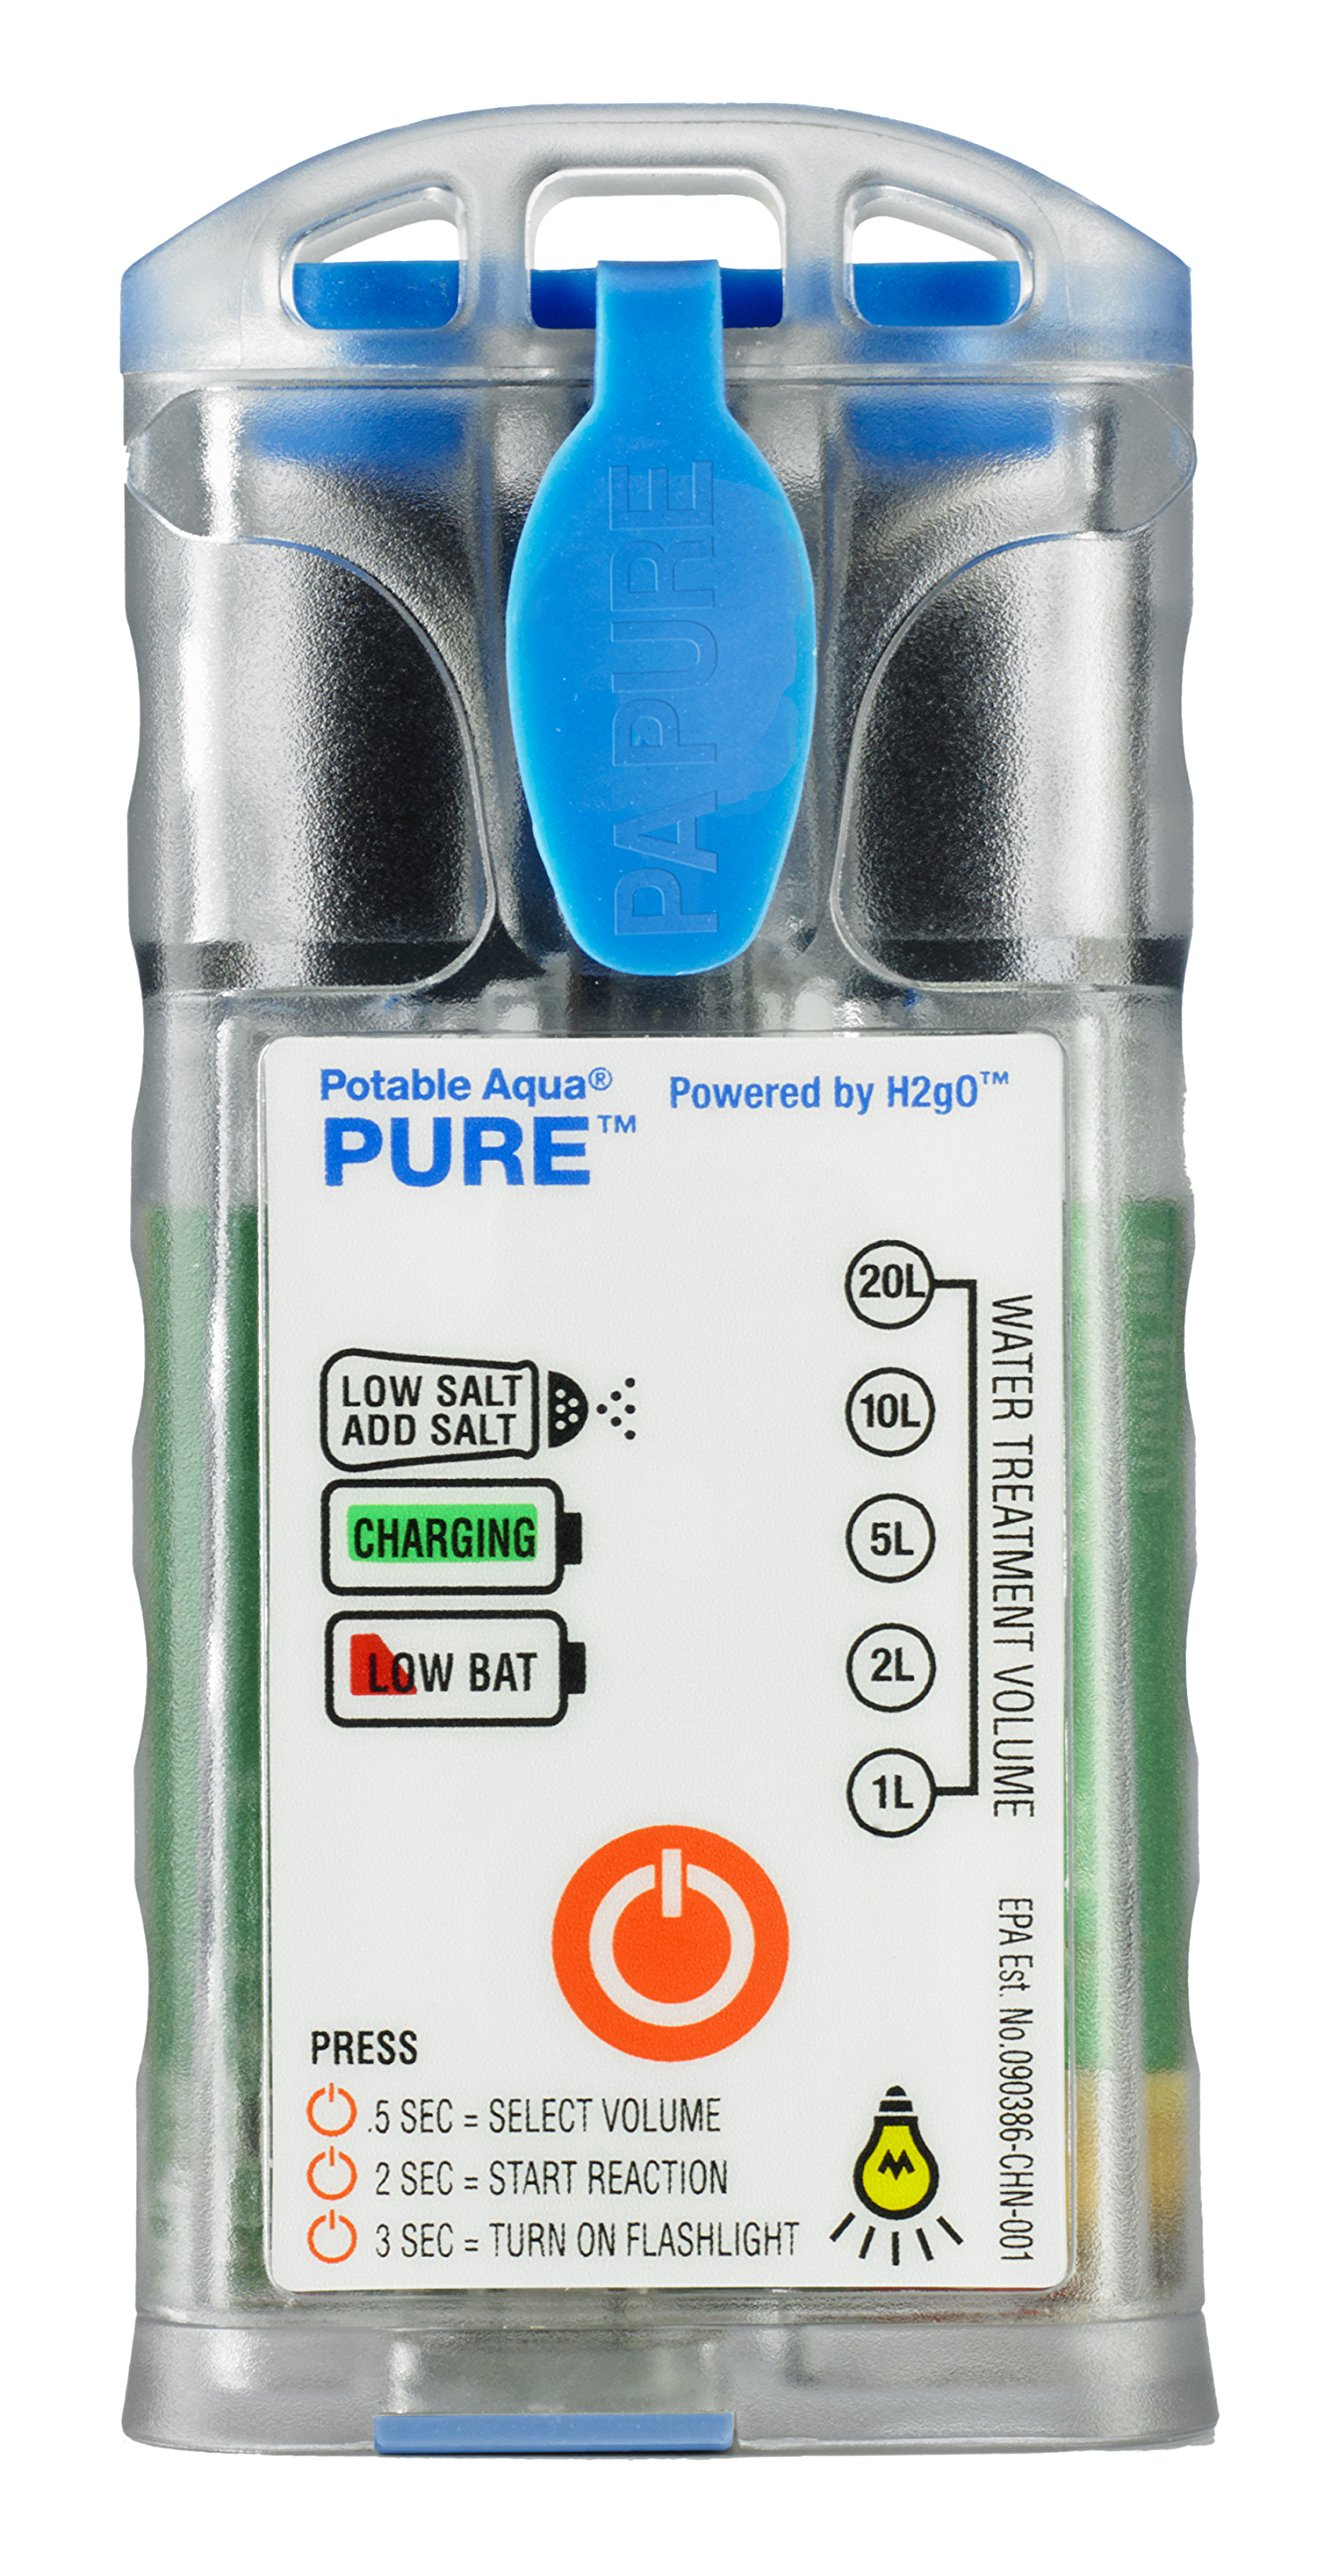 Potable Aqua Pure Portable Electrolytic Water Purifier Device by Potable Aqua